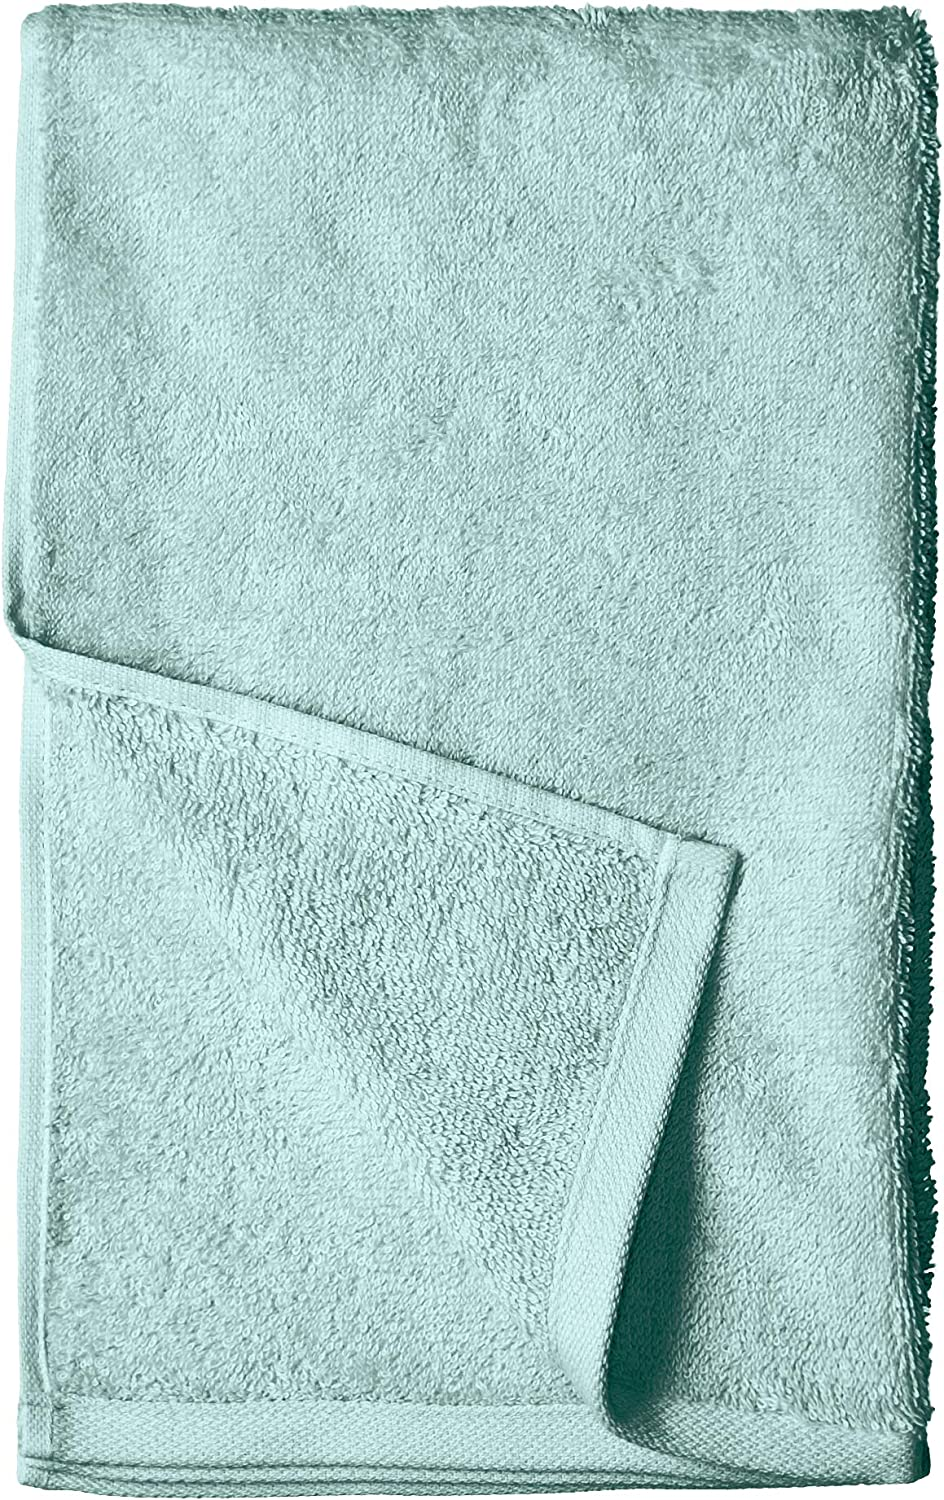 AmazonBasics Cotton Hand Towels